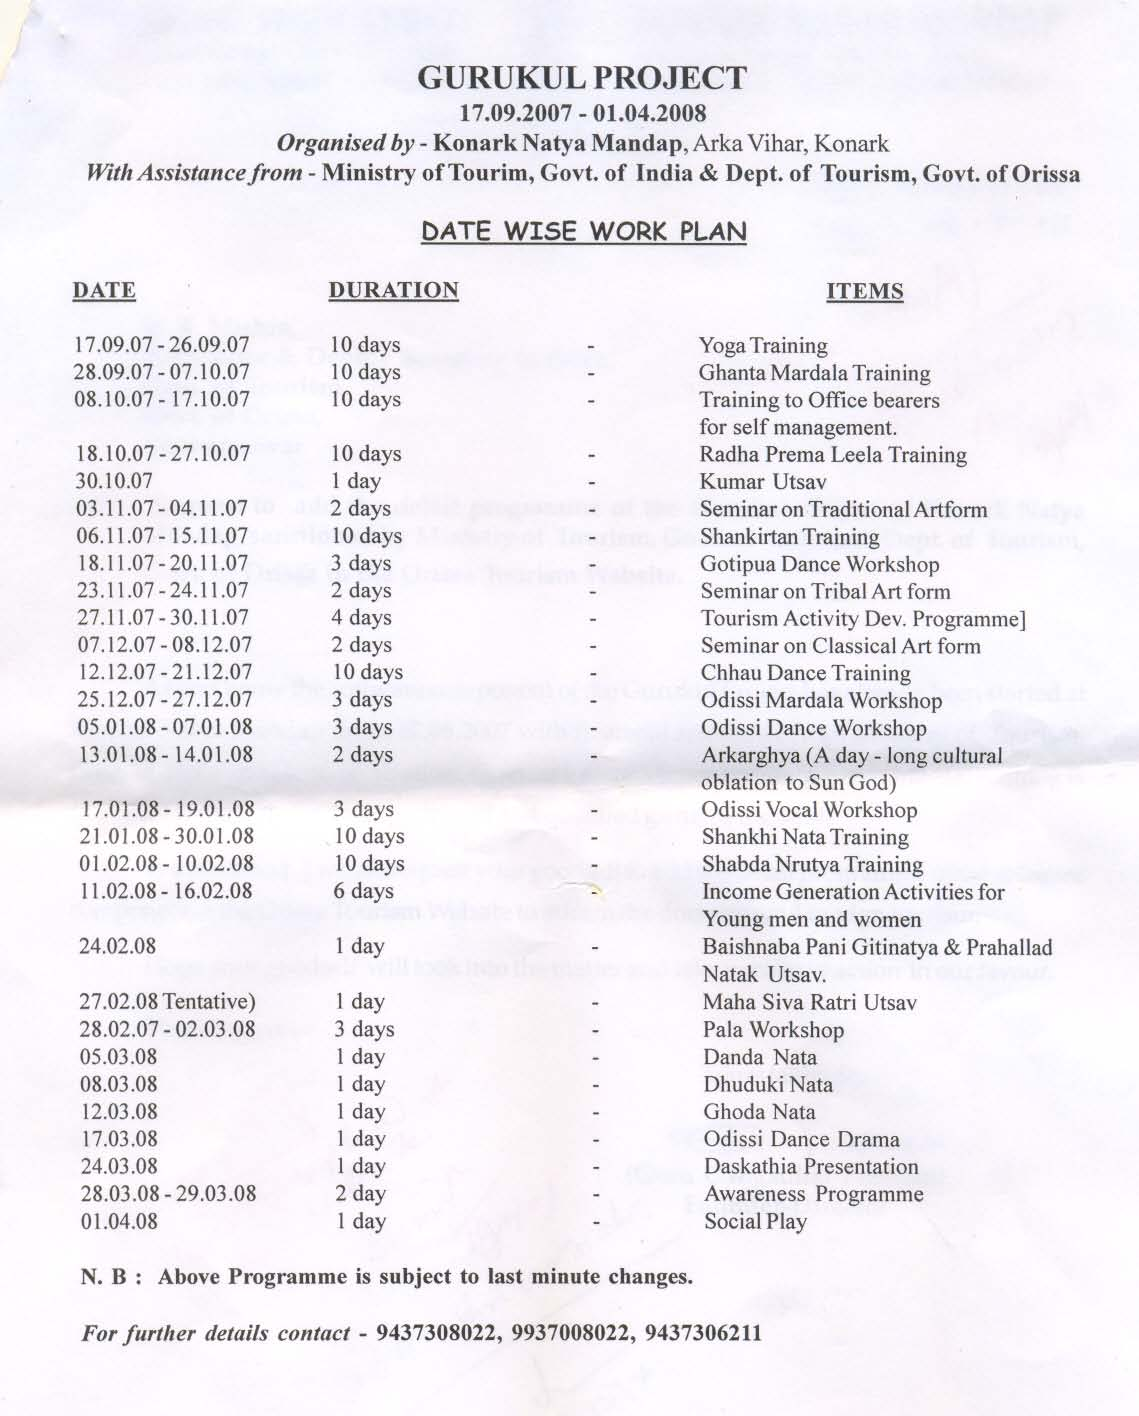 gurukul_project_date-wise_work_plan_161007.jpg